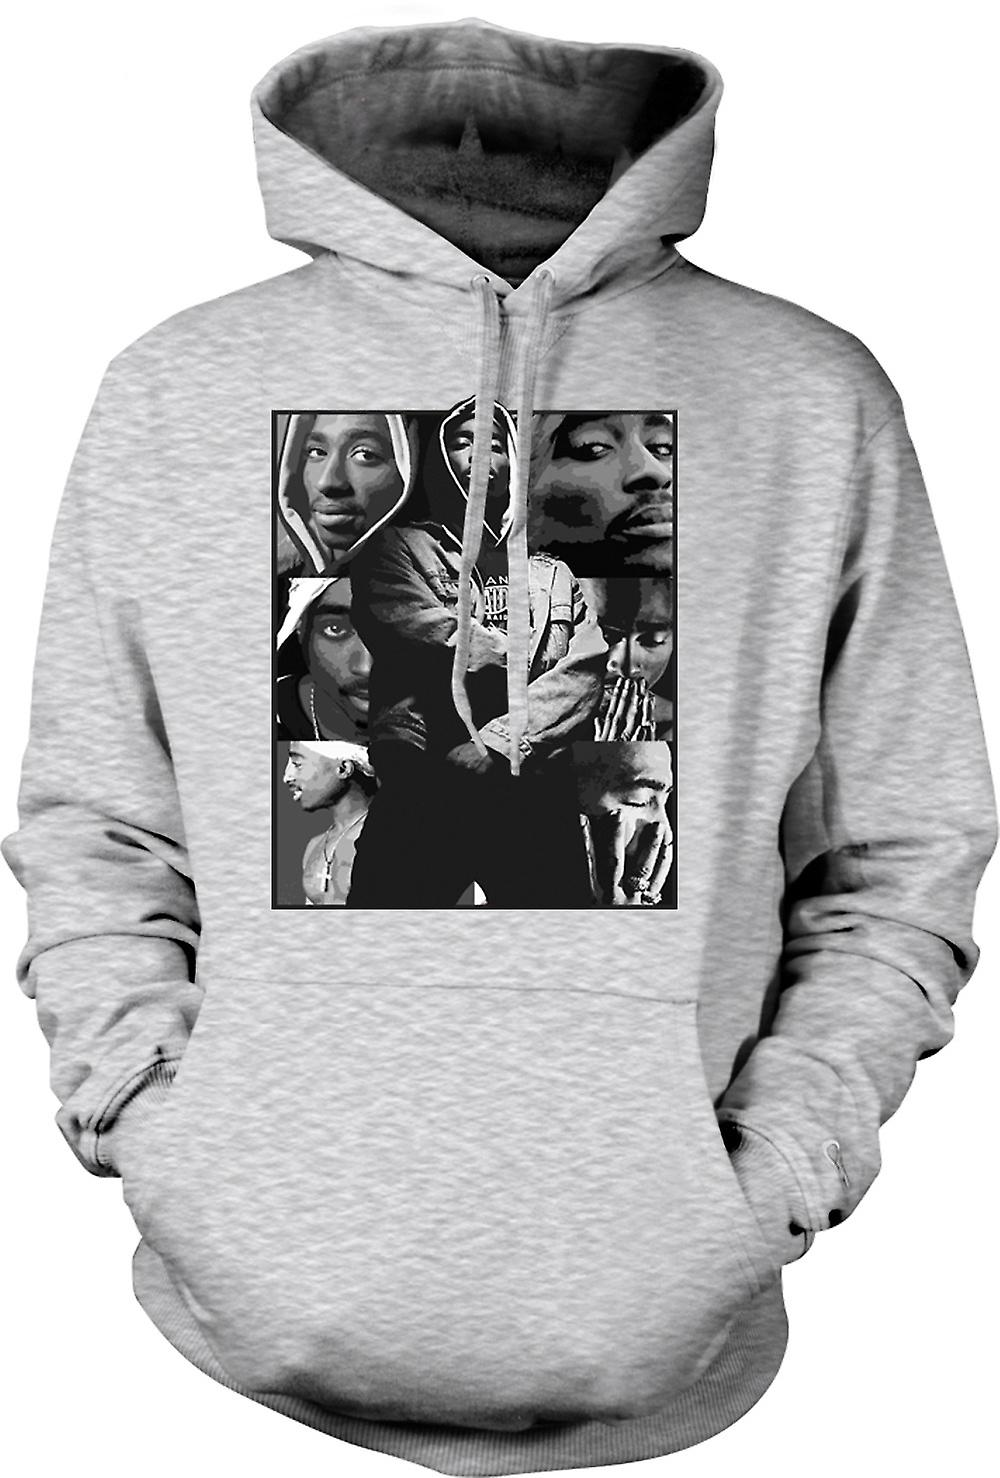 Mens Hoodie - Tupac Collage - Hip Hop